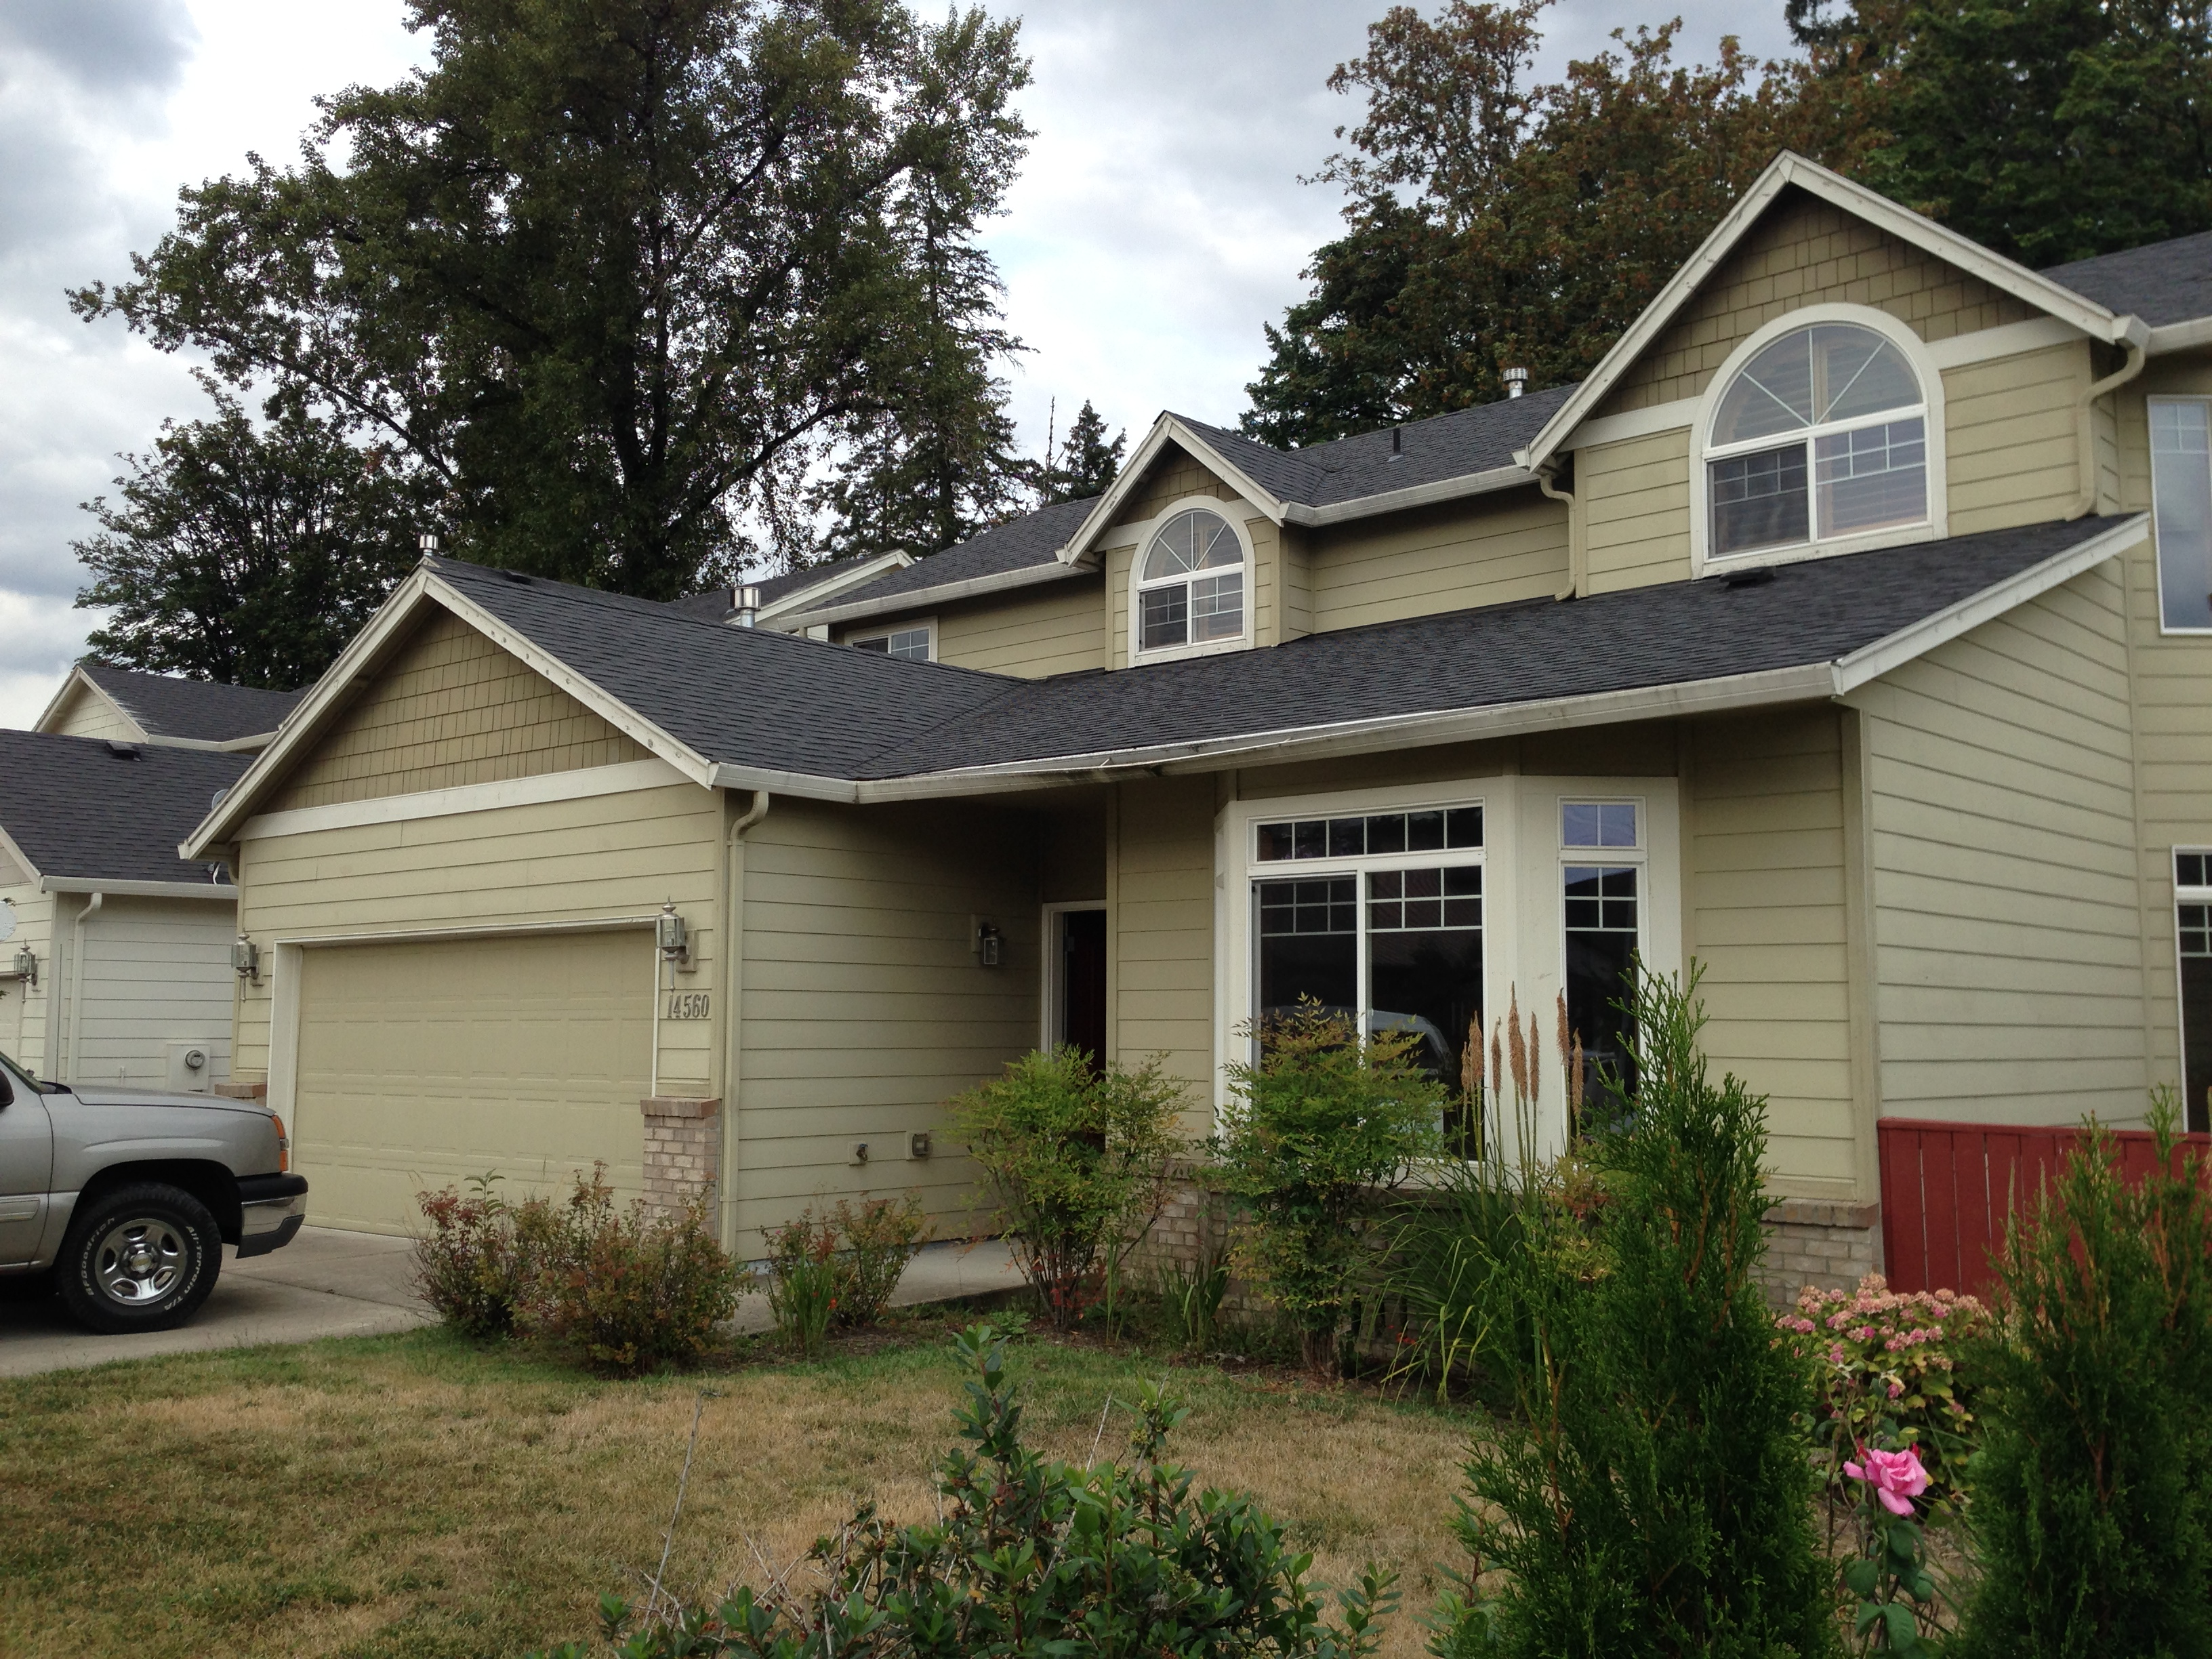 SOLD 14560 SE Marci Way, Clackamas, OR